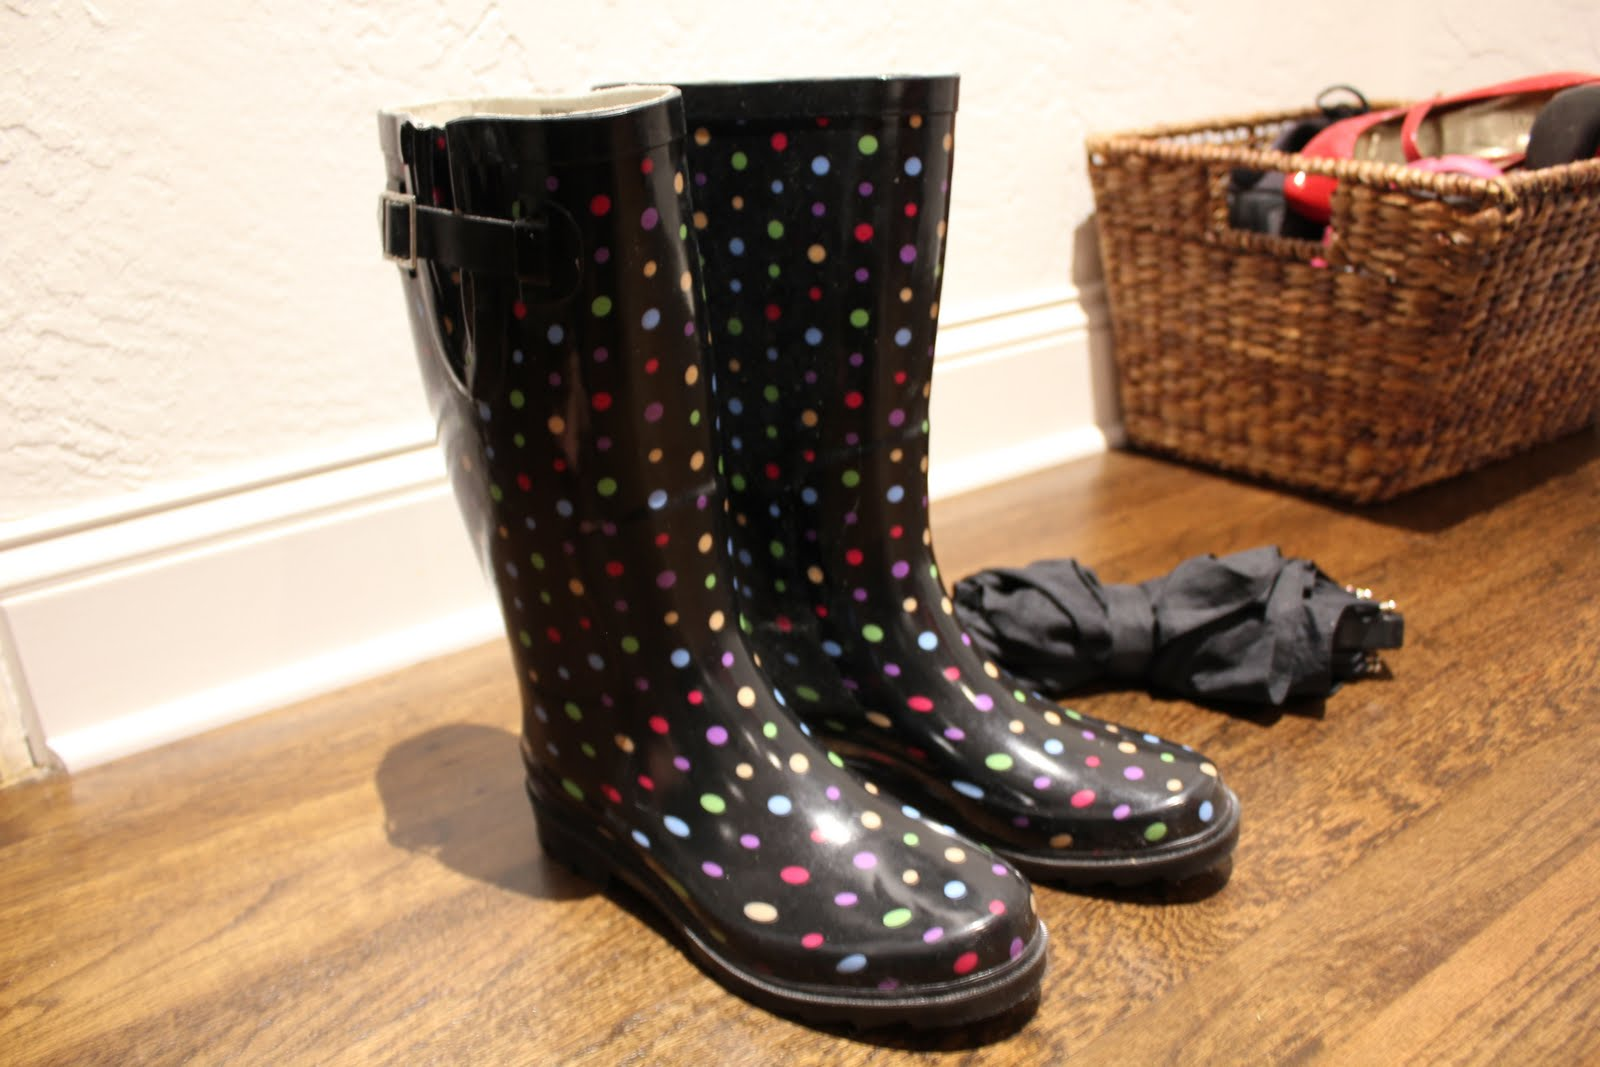 Viva Fashion: Polka Dot Rain Boots...